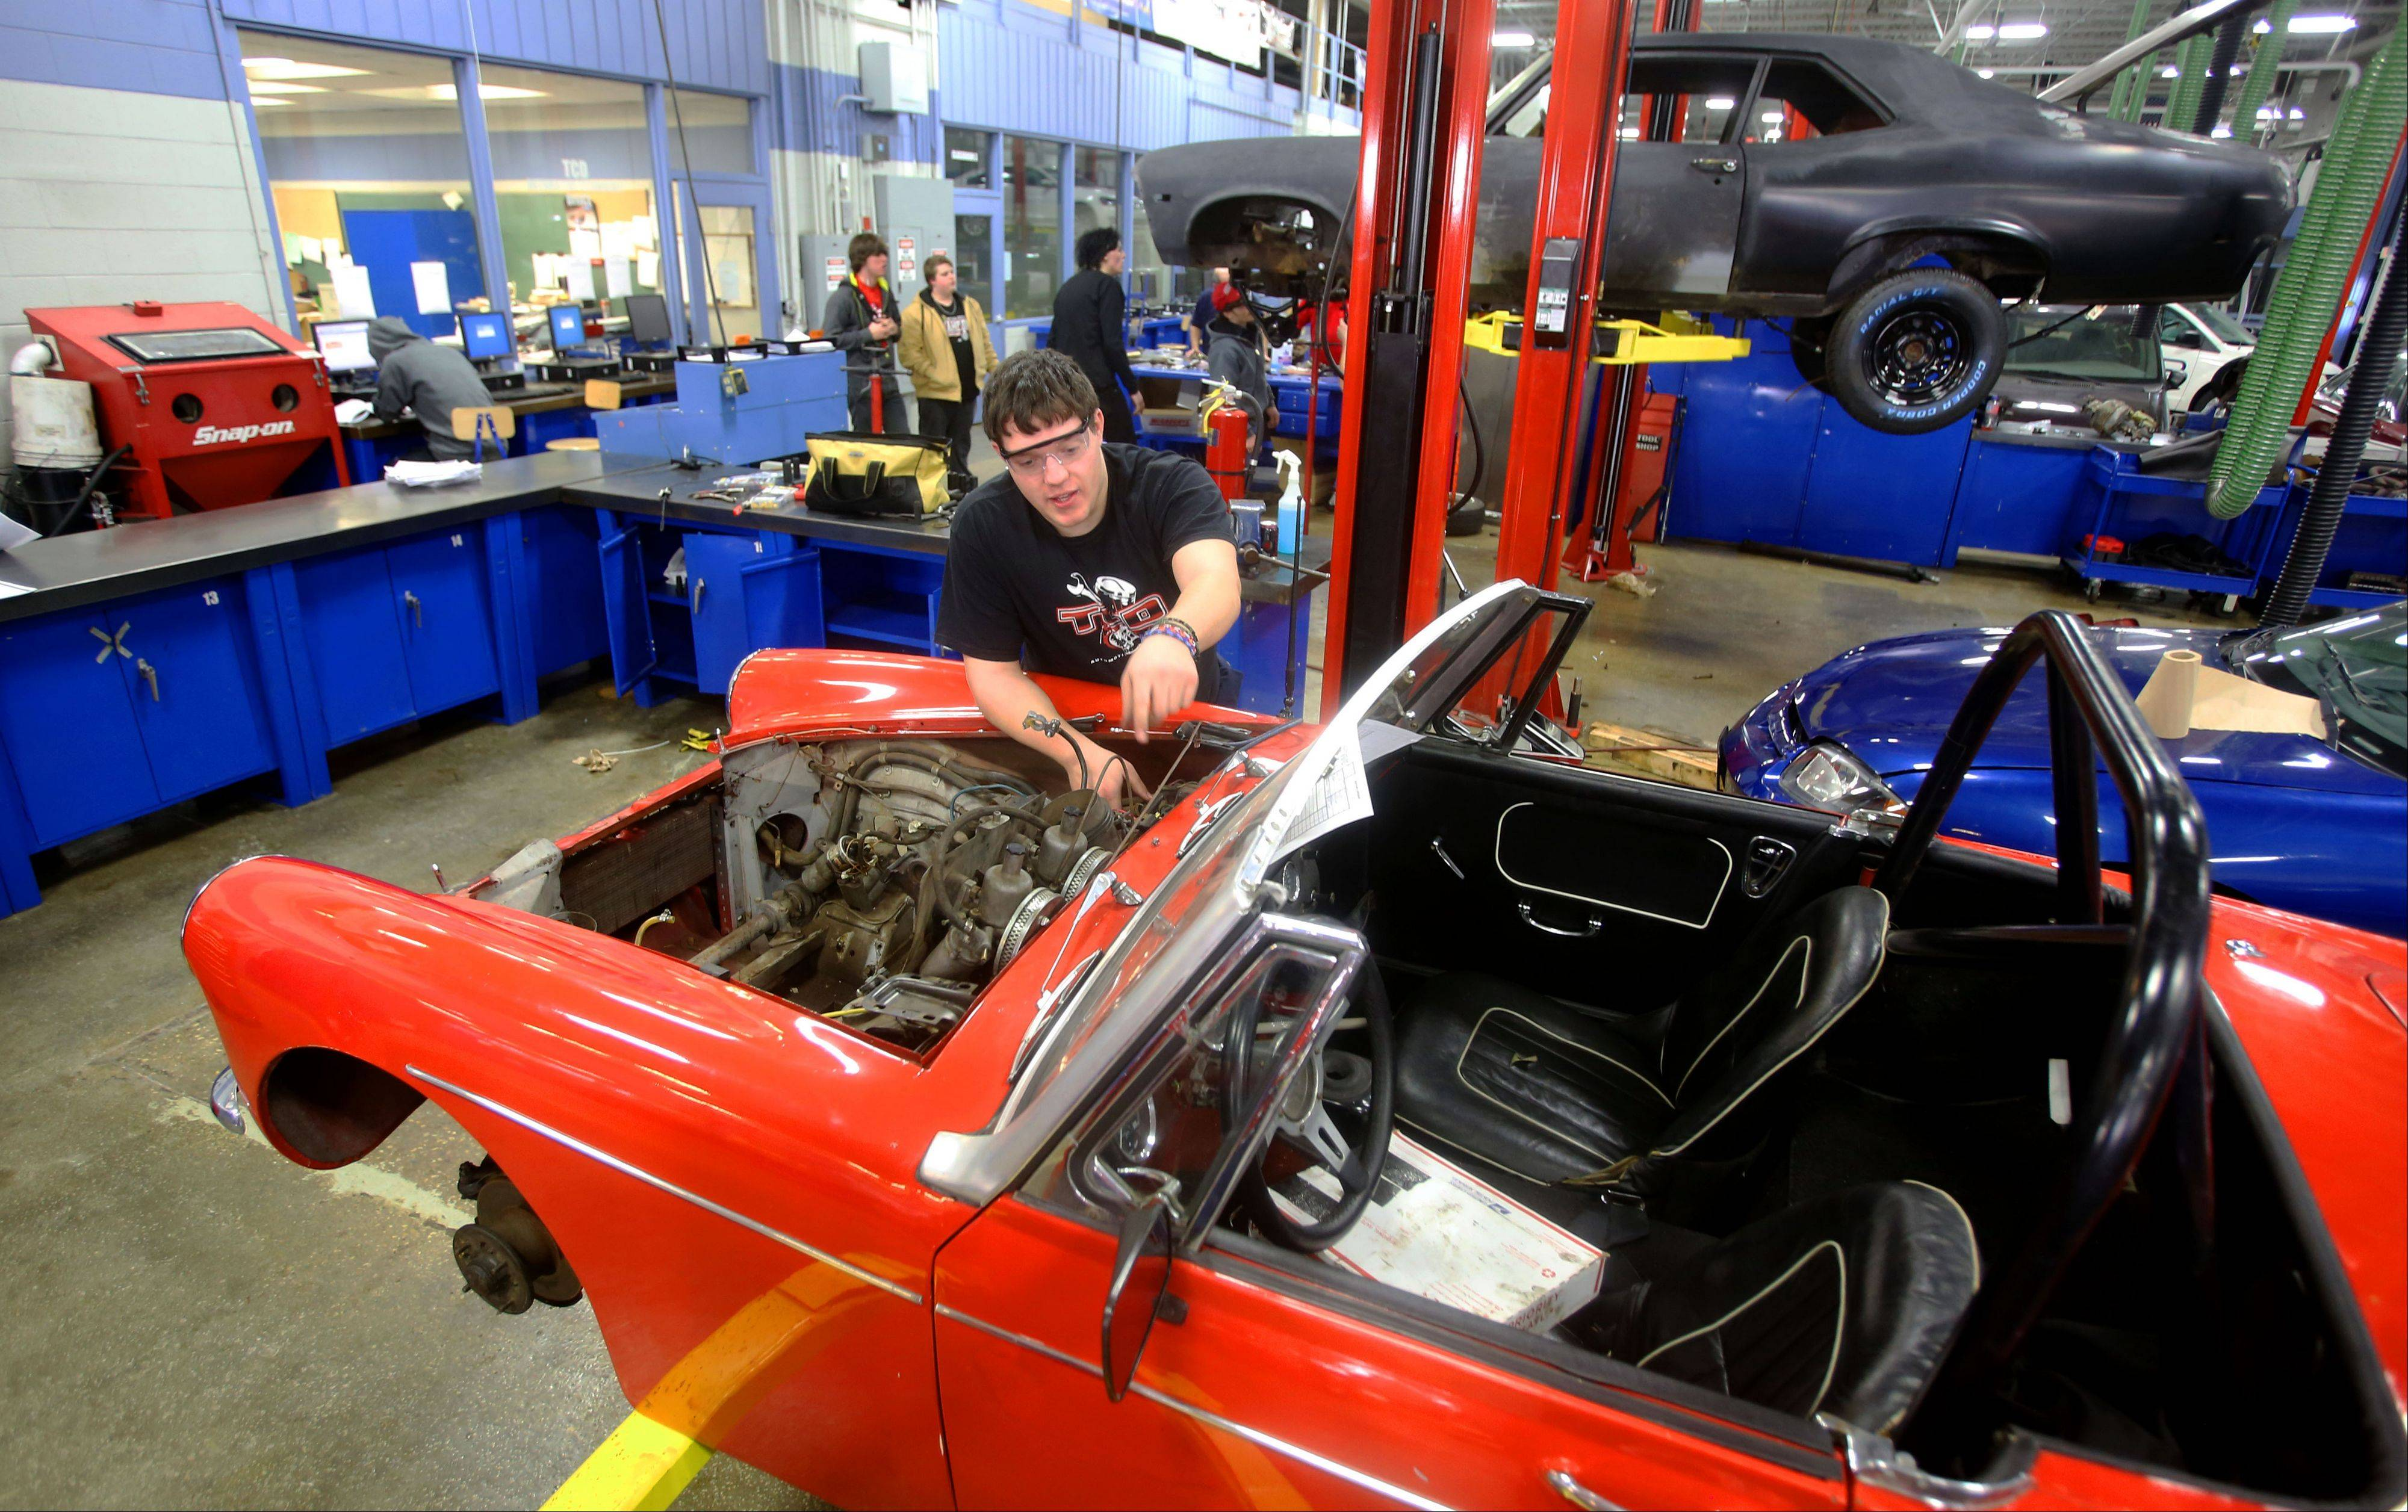 Nathan Teske of Naperville Central works on his 1996 MG Midget. The center also has donated vehicles for students to get hands-on experience diagnosing problems that the instructors have created. Area residents can have students work on their cars and are charged only for parts.